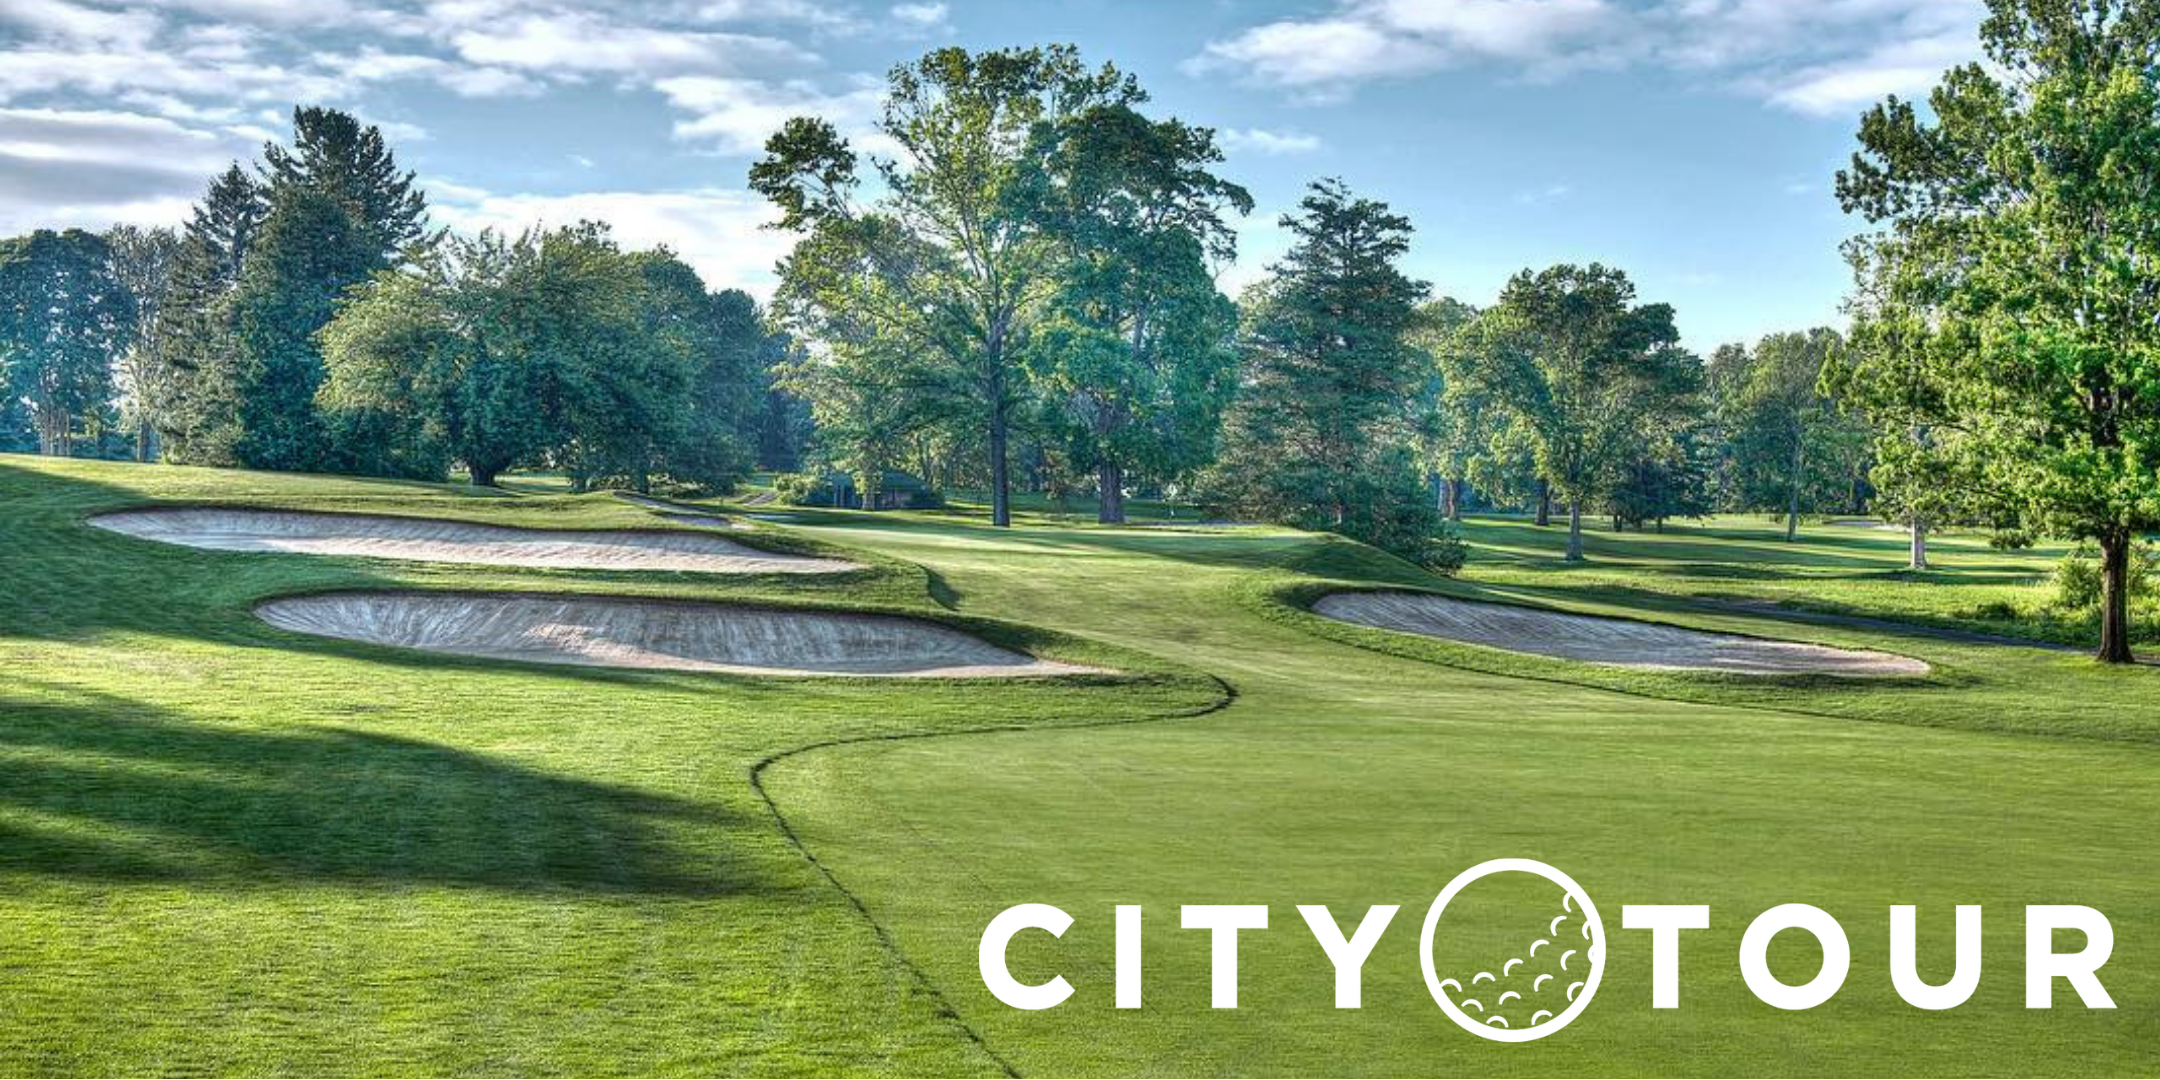 Seattle City Tour - The Home Course